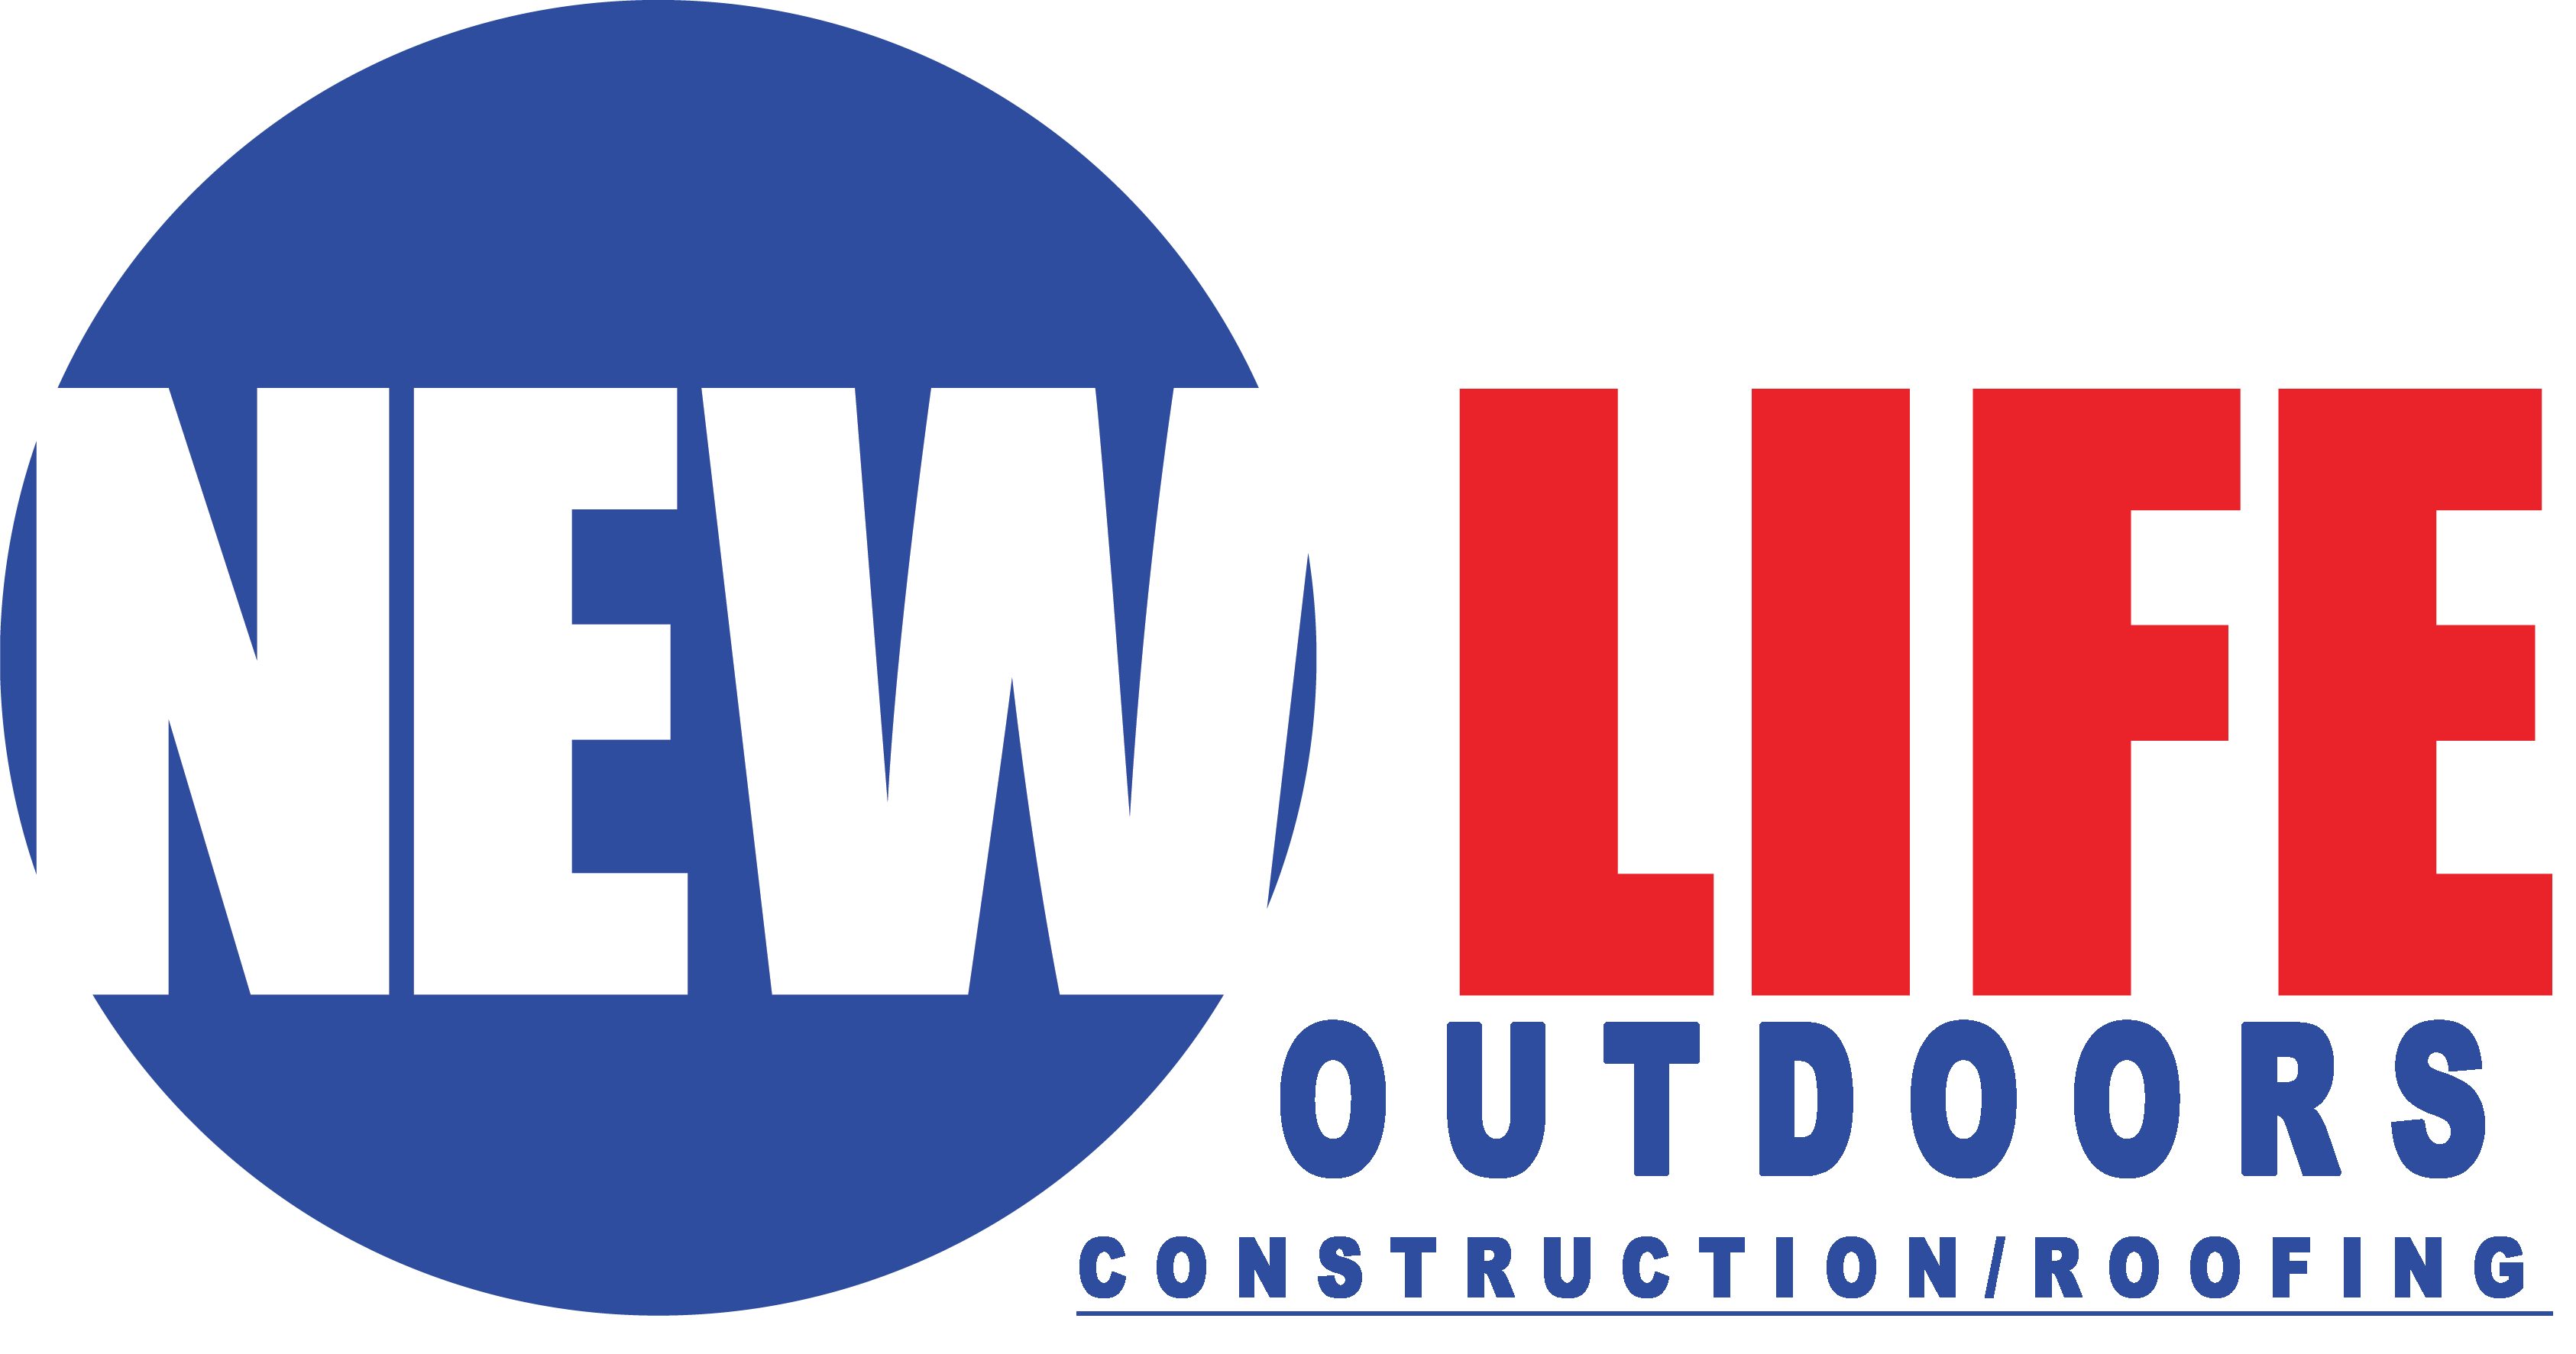 Construction / Roofing Division